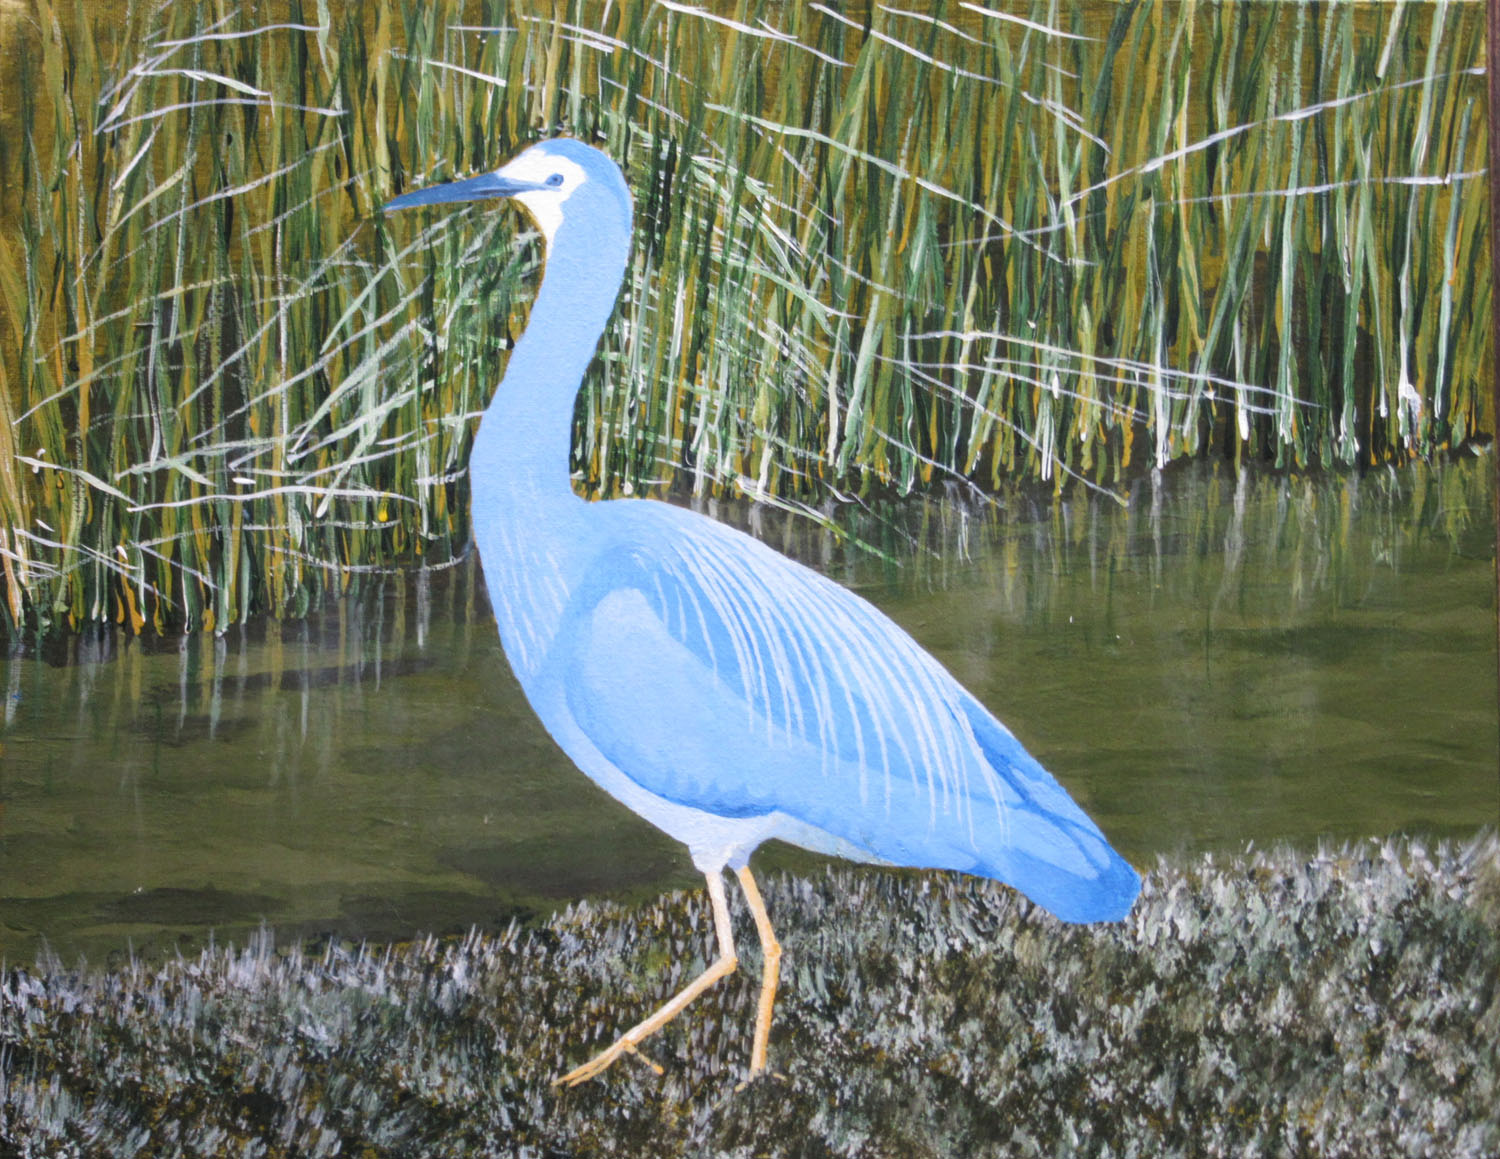 Marsh bird, heron, nz bird, bernard carroll